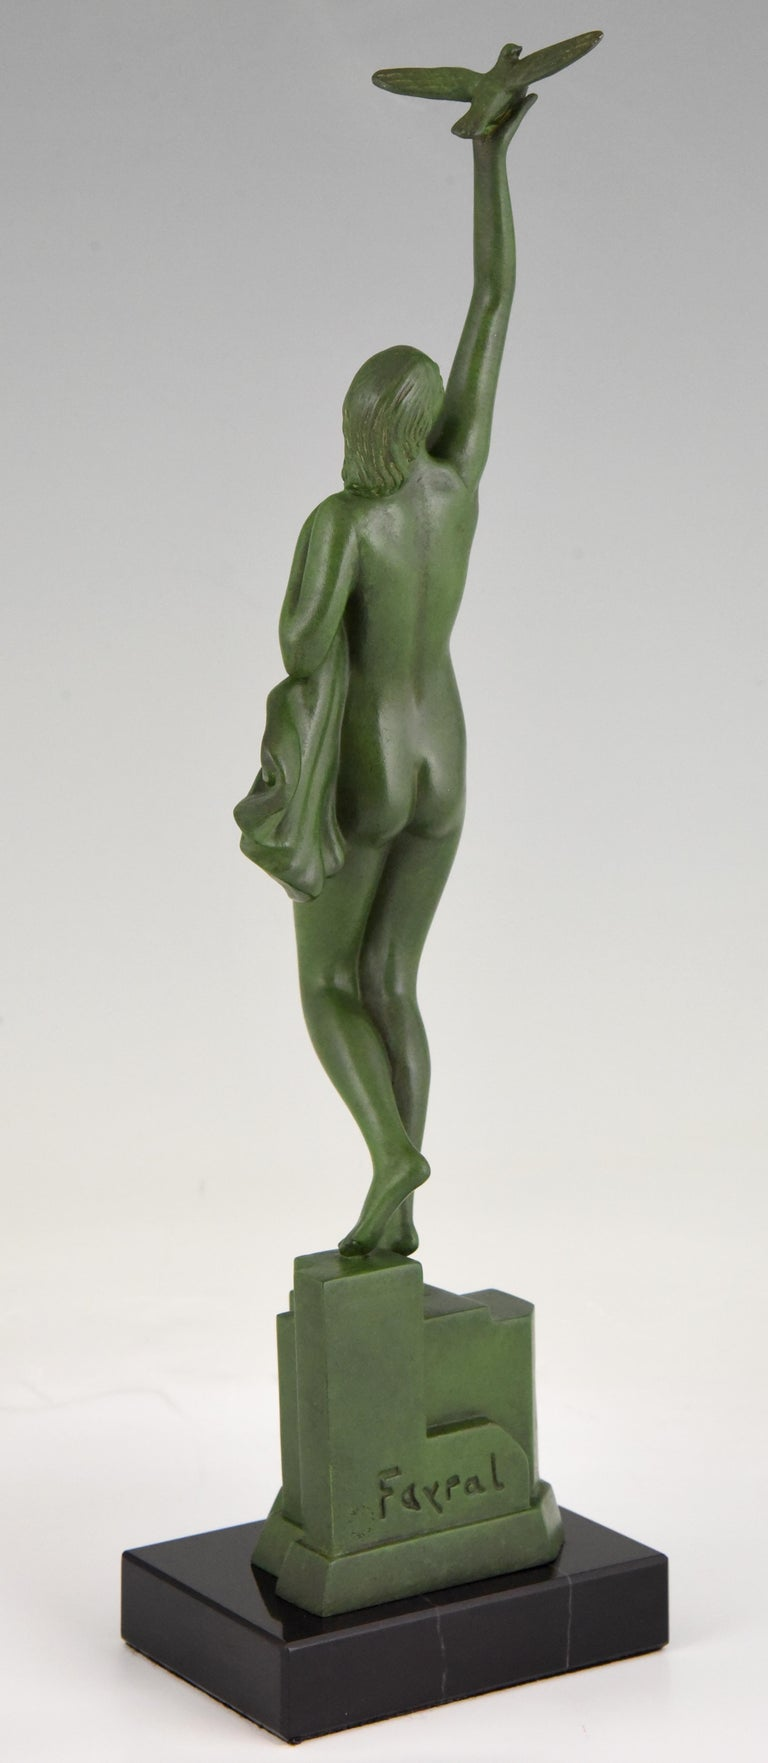 Patinated Art Deco Sculpture of a Nude with Dove Fayral Pierre Le Faguays, France, 1930 For Sale